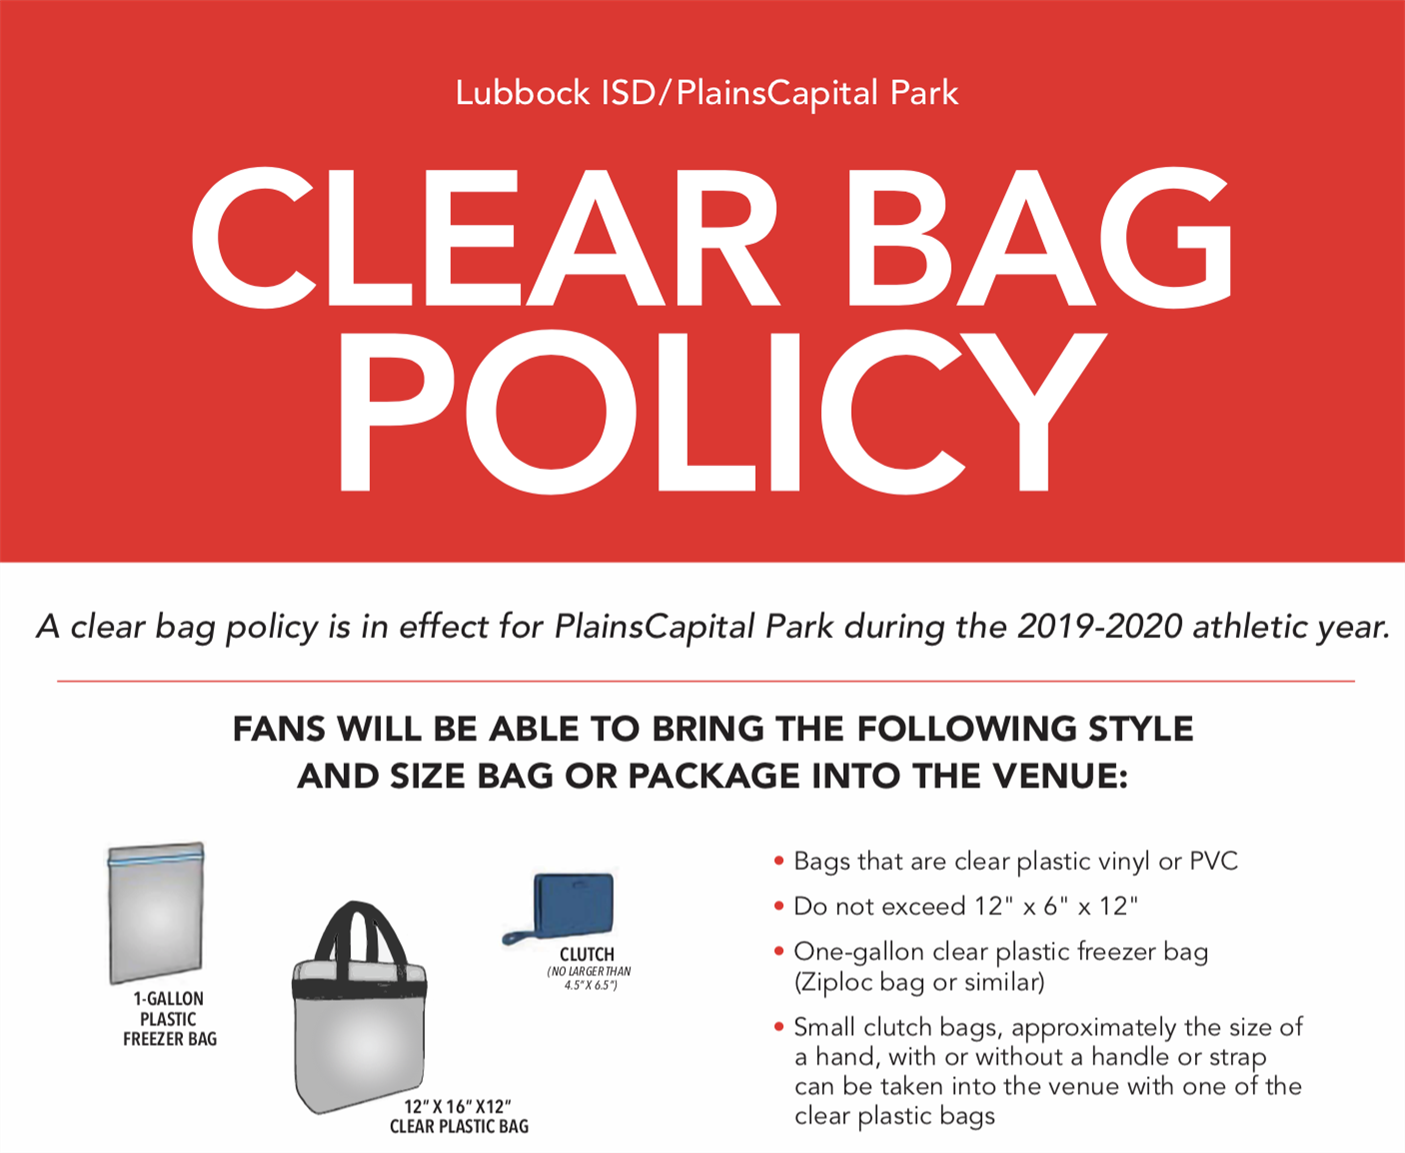 Plains Capital Park Clear Bag Policy